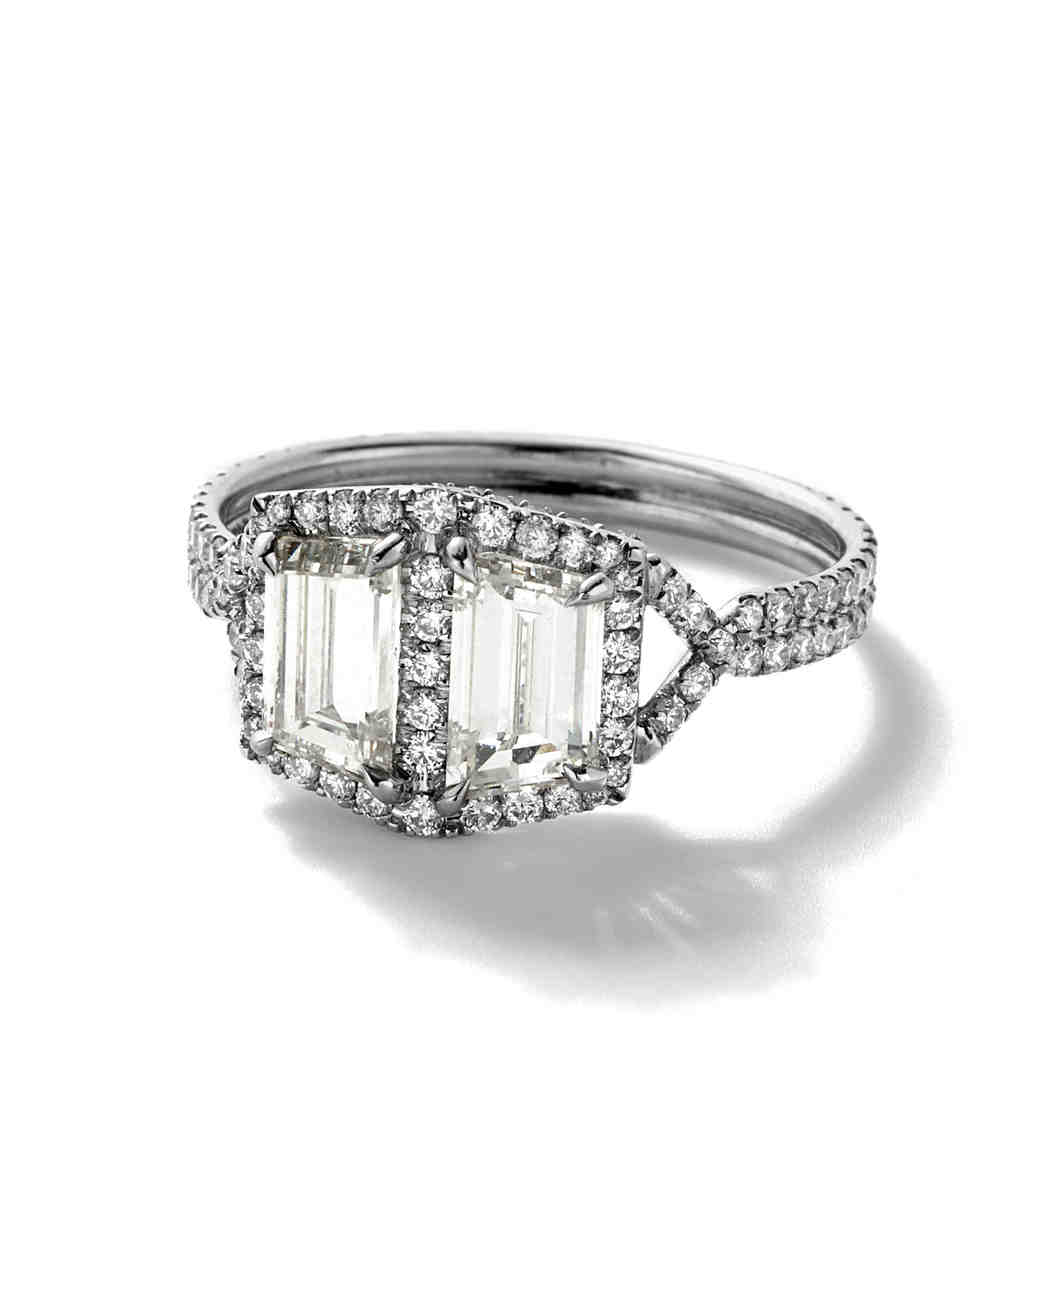 engagement-ring-trends-monique-pean-1215.jpg